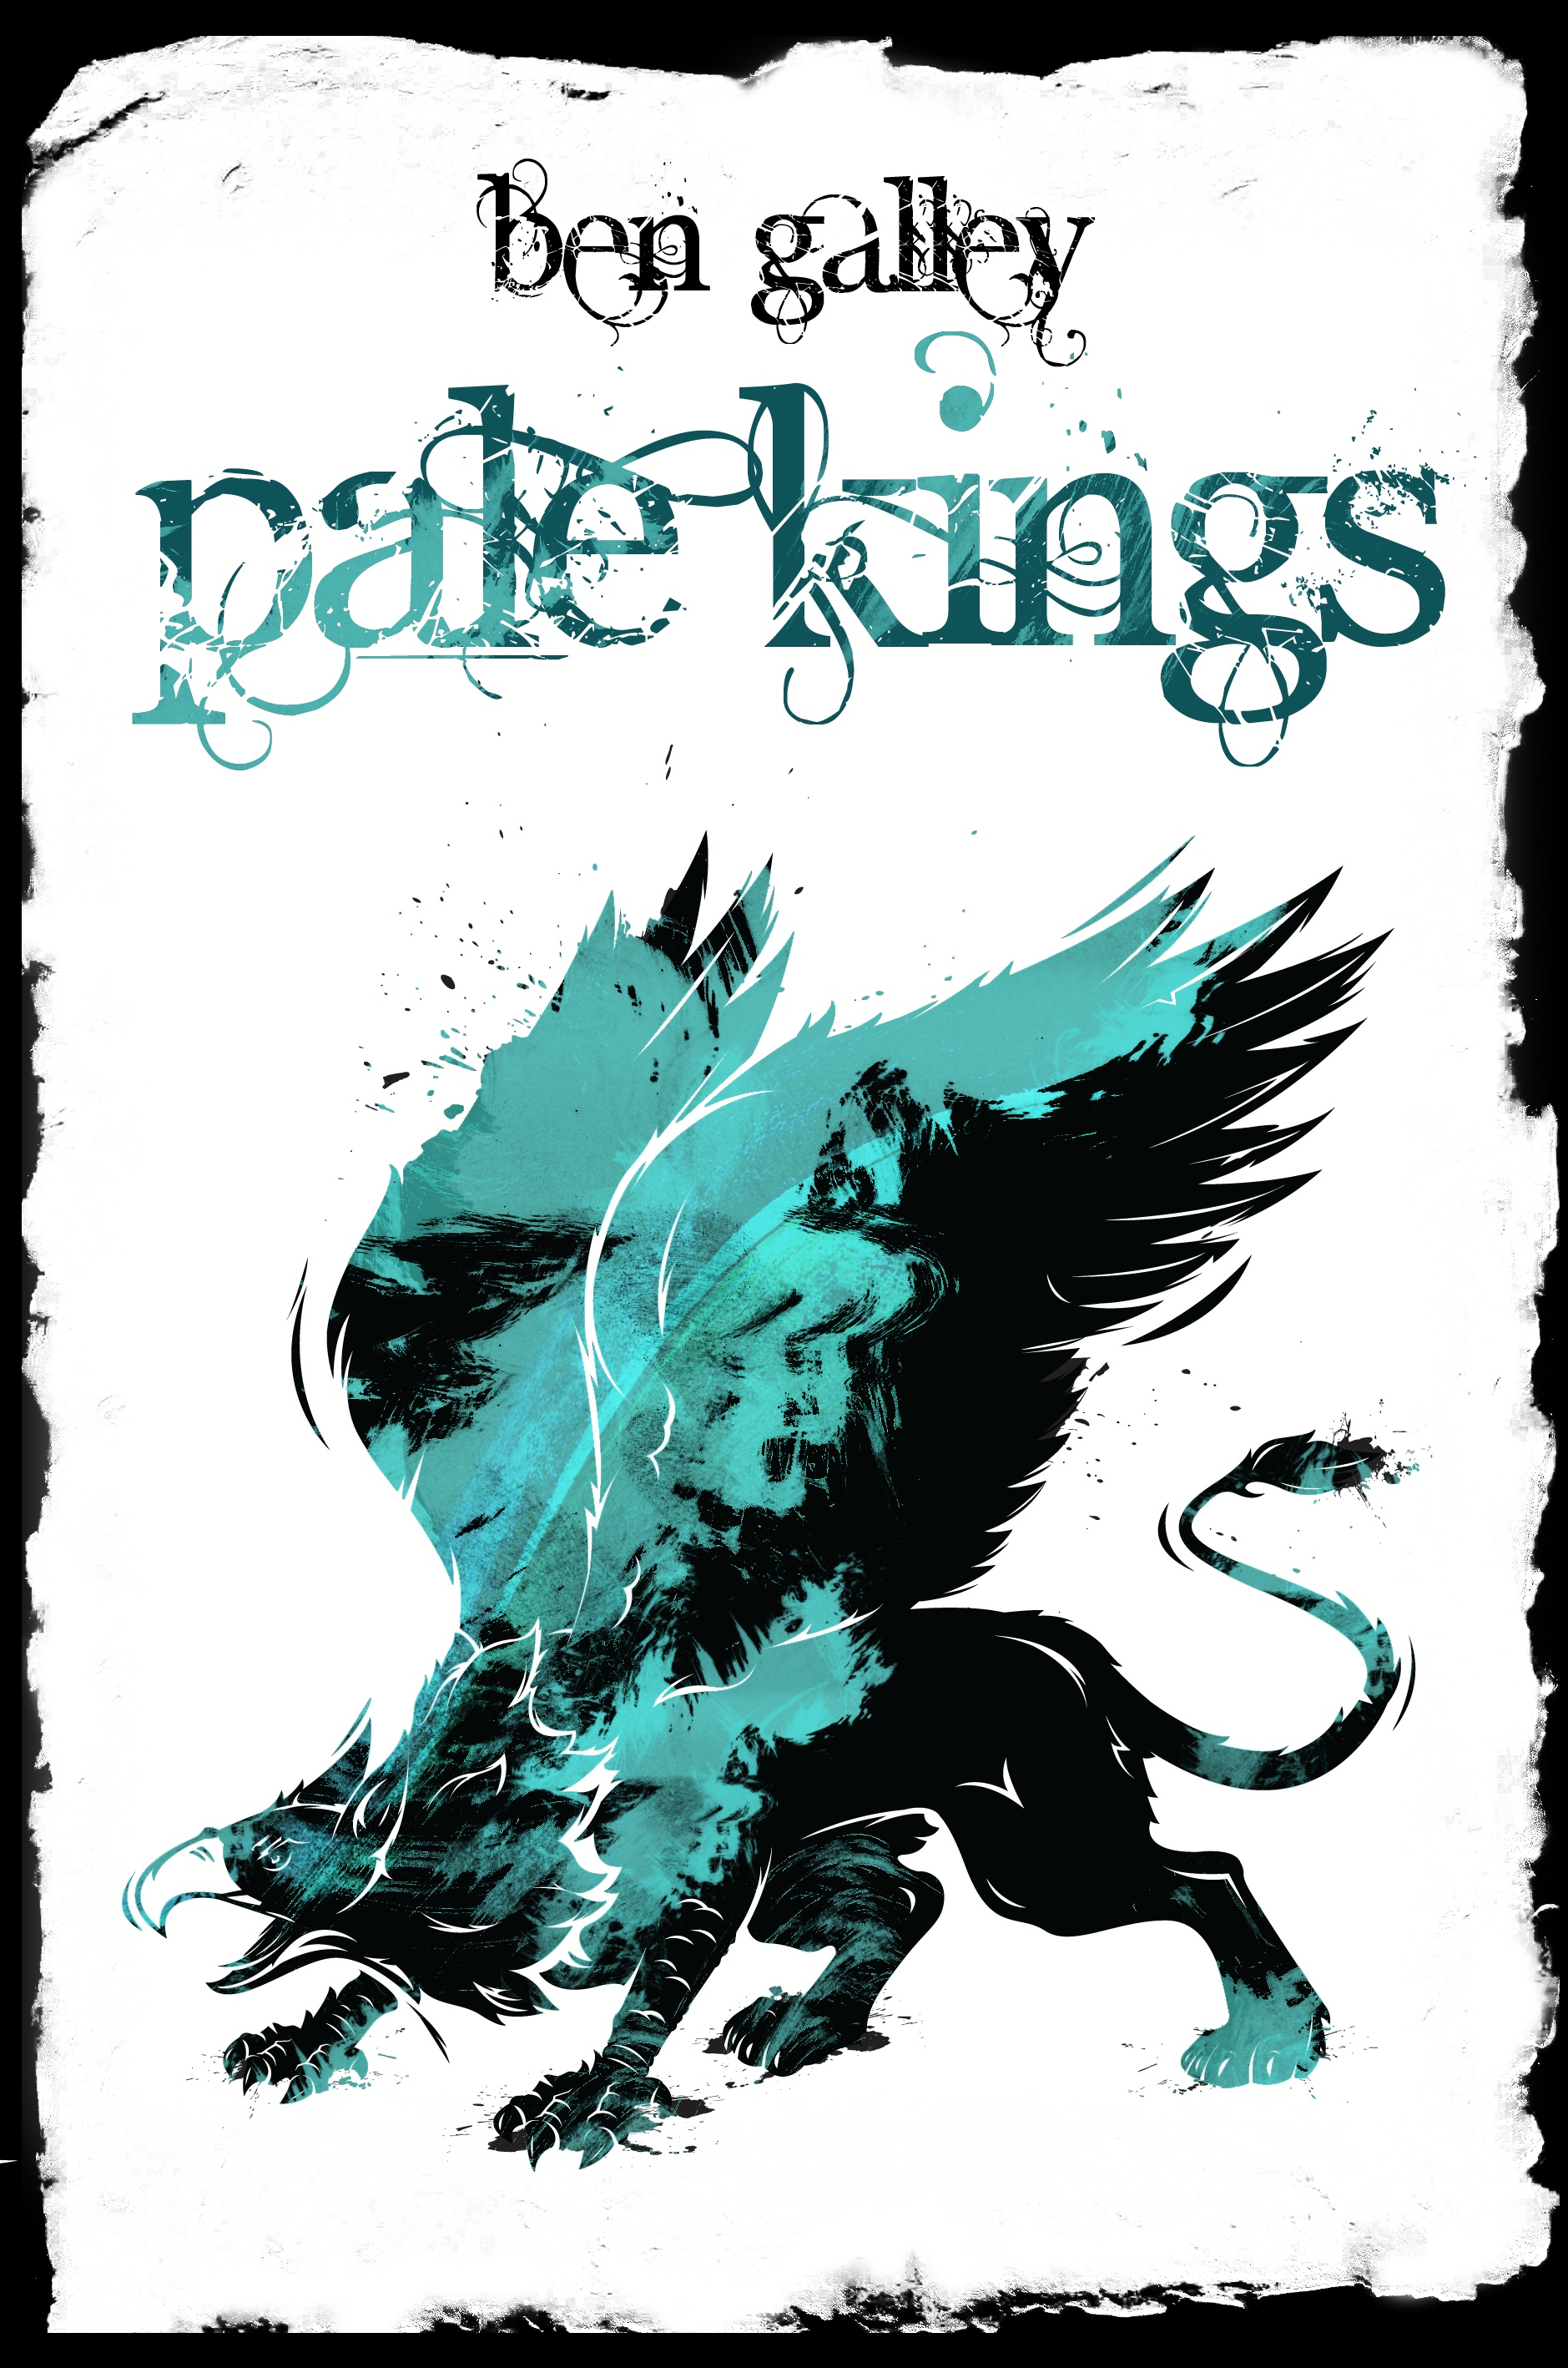 Pale Kings